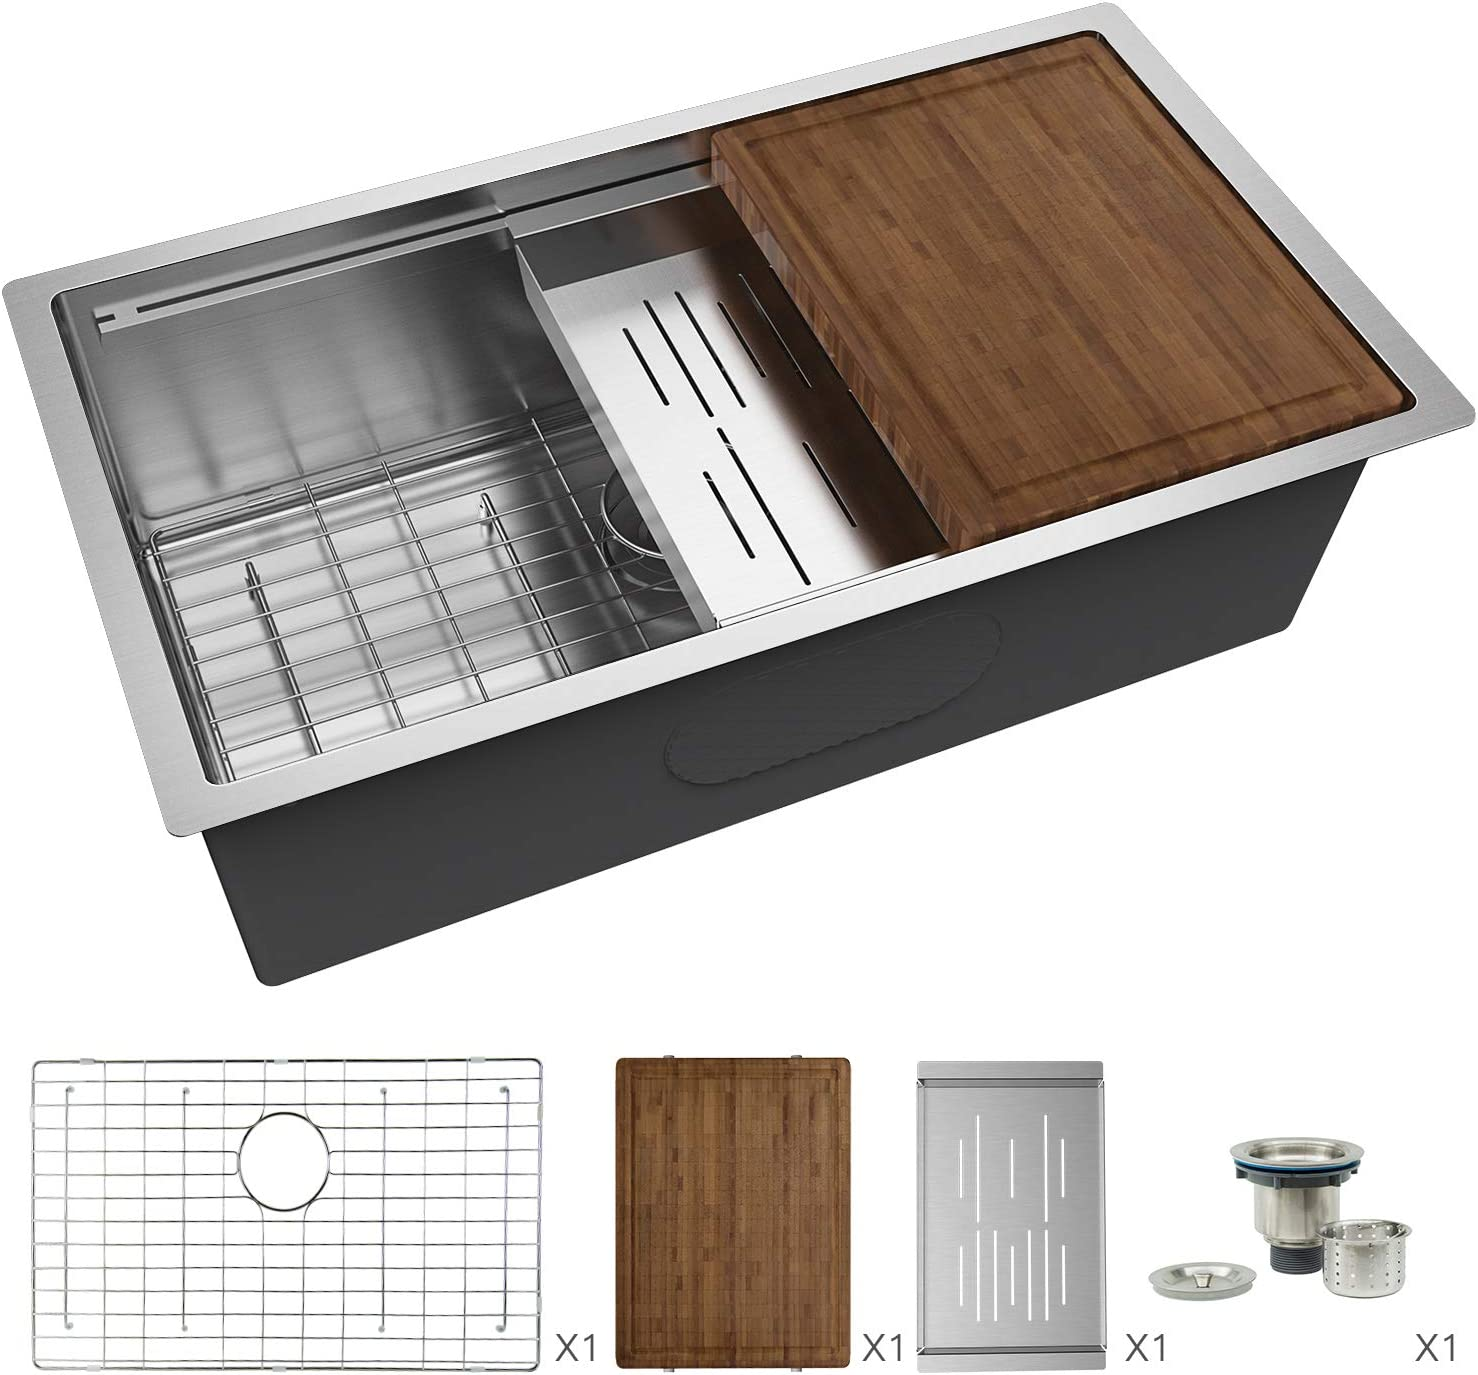 16 Gauge Stainless Steel Single Bowl with Stainless-steel Bamboo Cutting Board and Drain Tray TORVA 24-Inch Workstation Undermount Kitchen Sink 24 x 19 x 10 inches